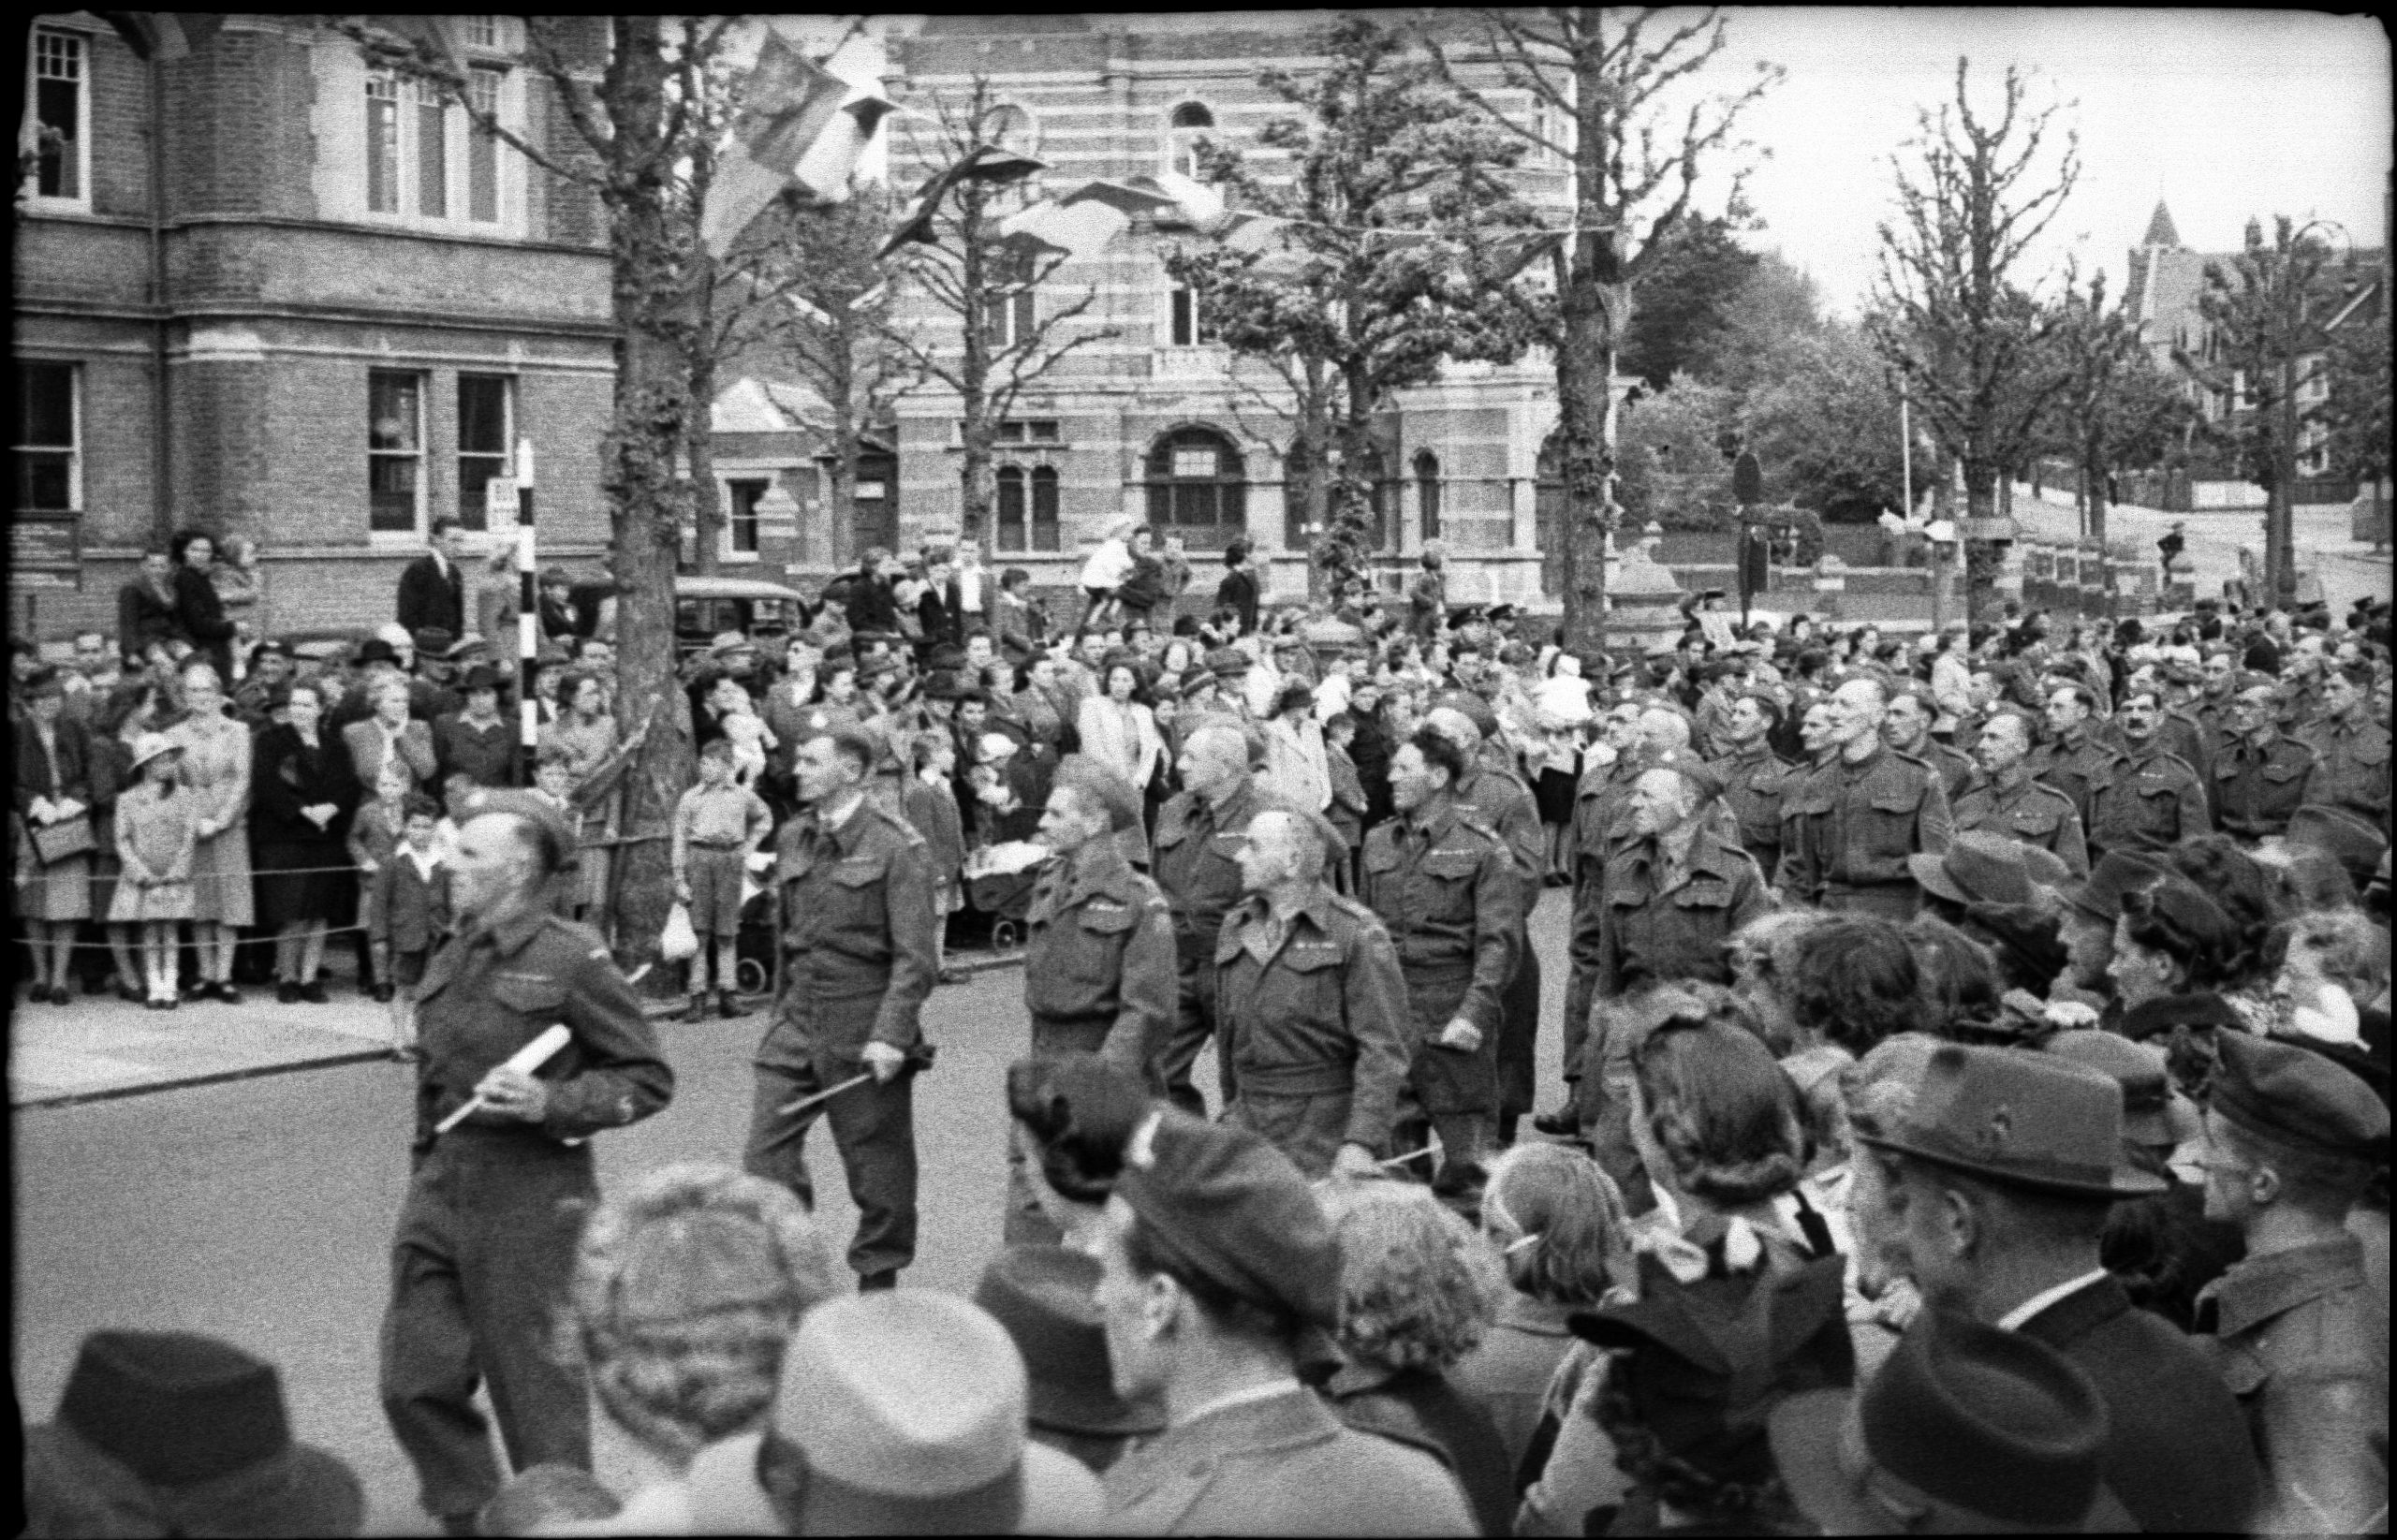 Parade to mark the end of the war in Europe on 13 May 1945, in Bexhill